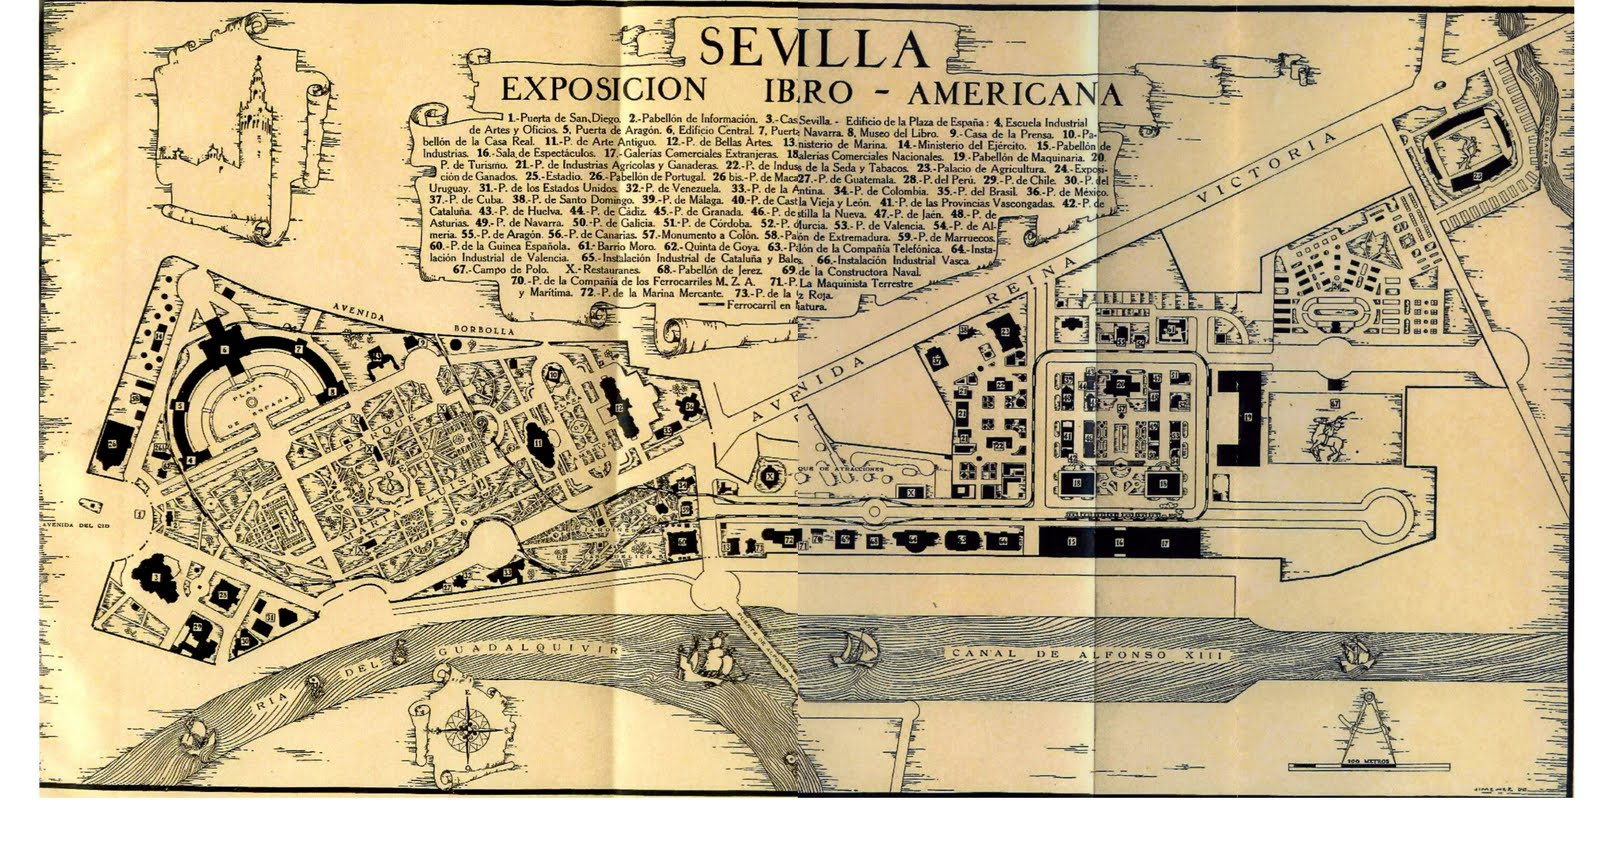 The Ibero-American Exposition of 1929 in Seville